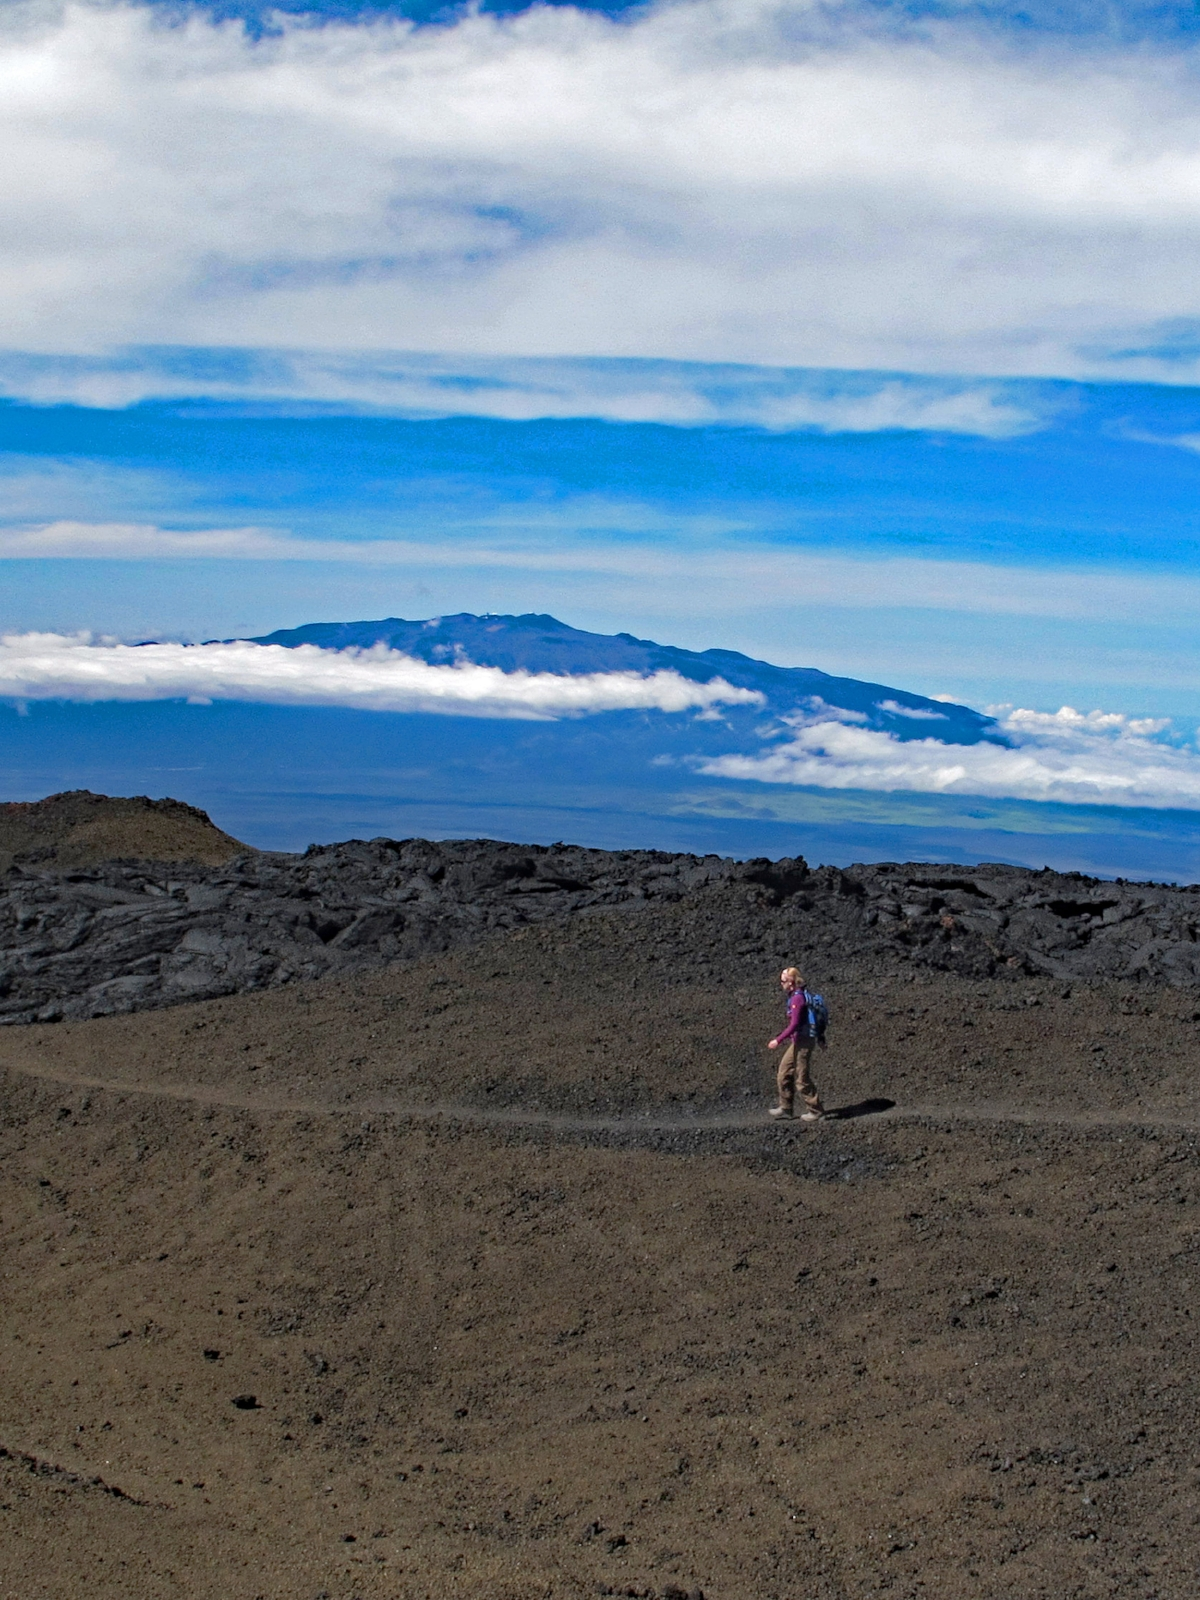 Descending Mauna Loa with views of Mauna Kea